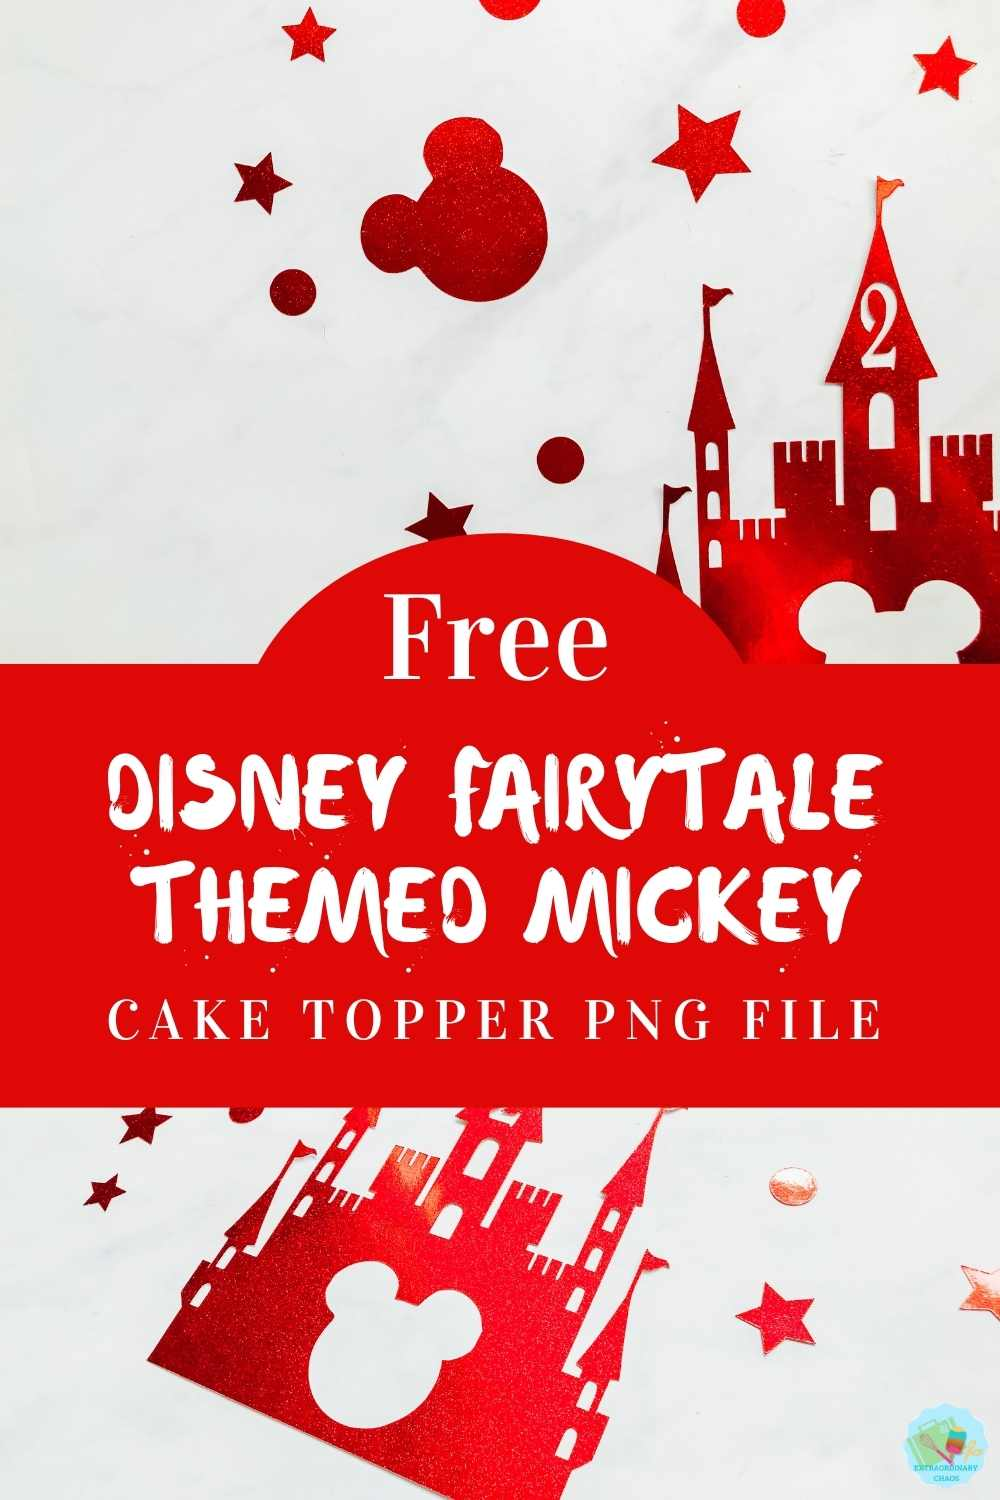 Free Disney Fairytale Themed Mickey Cake Topper for a magical themed birthday cake